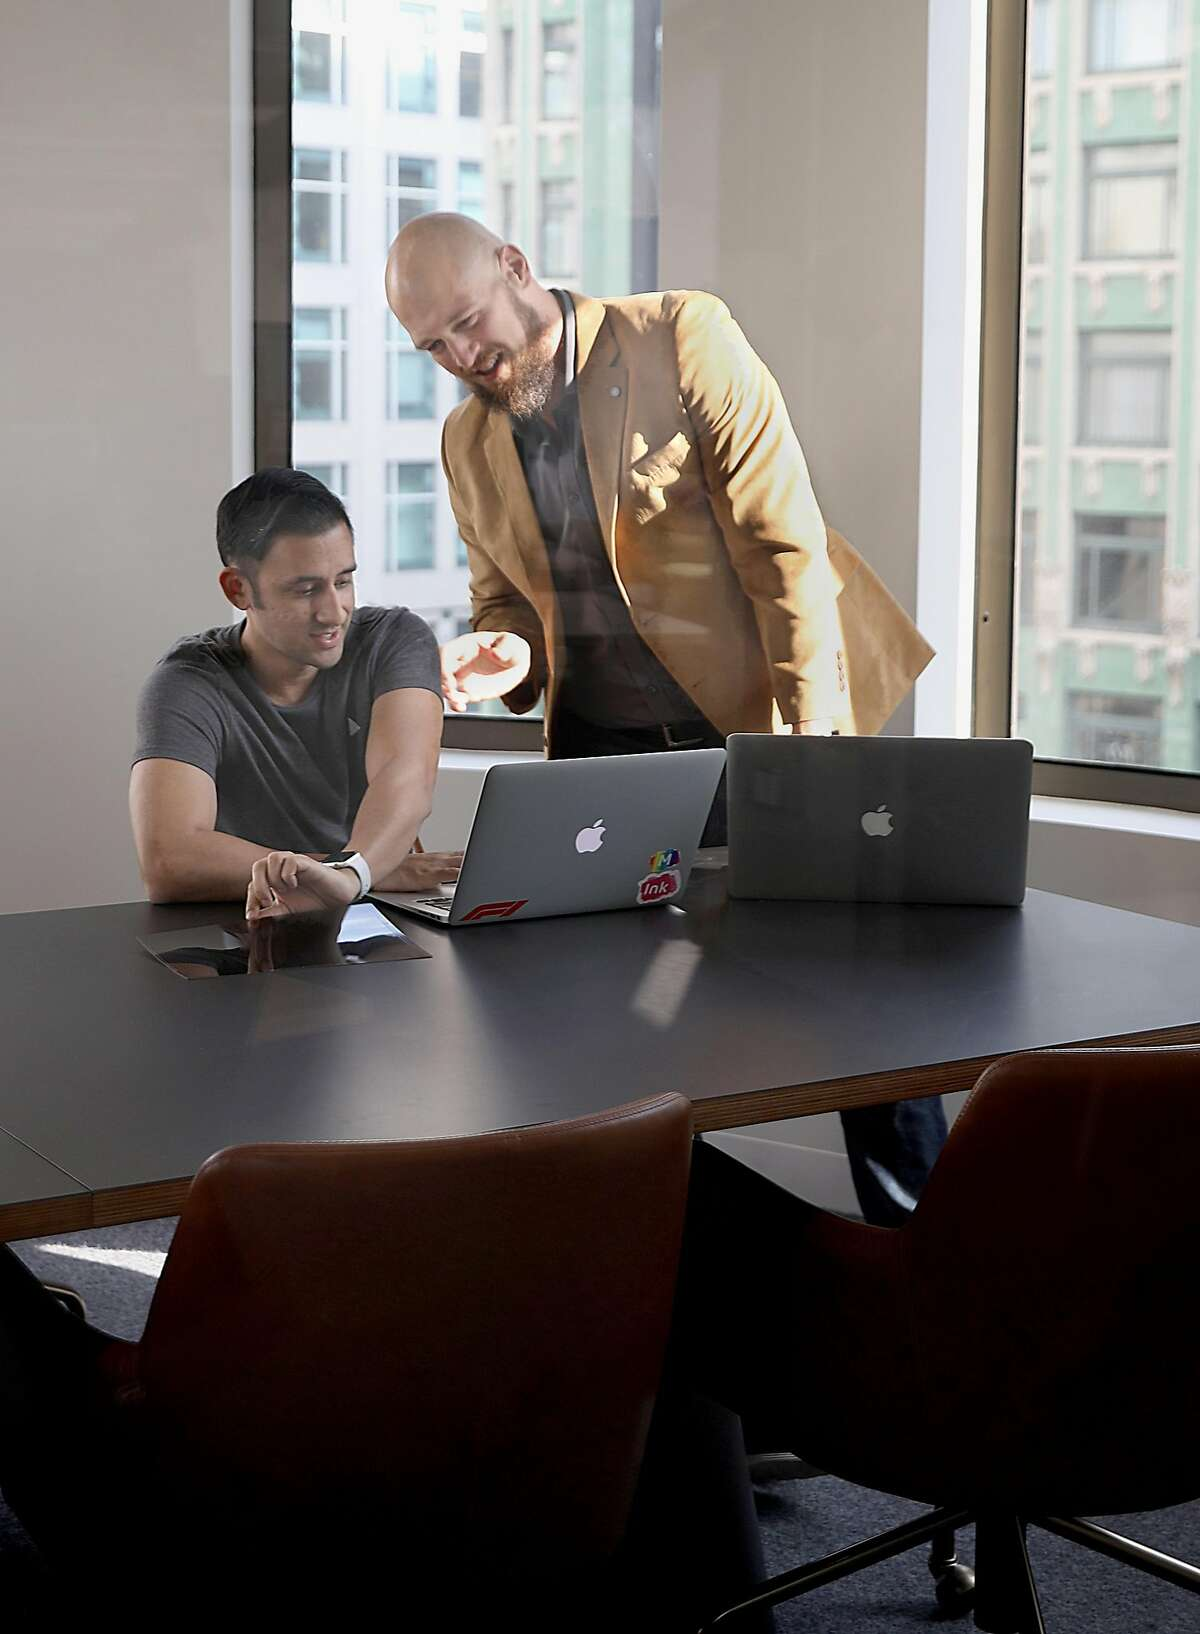 Account manager Jason Dhiman (left) and solutions architect Chris Kopyar (right) work in the new Movable Ink office spaceon Tuesday, Nov. 20, 2018, in San Francisco, Calif.